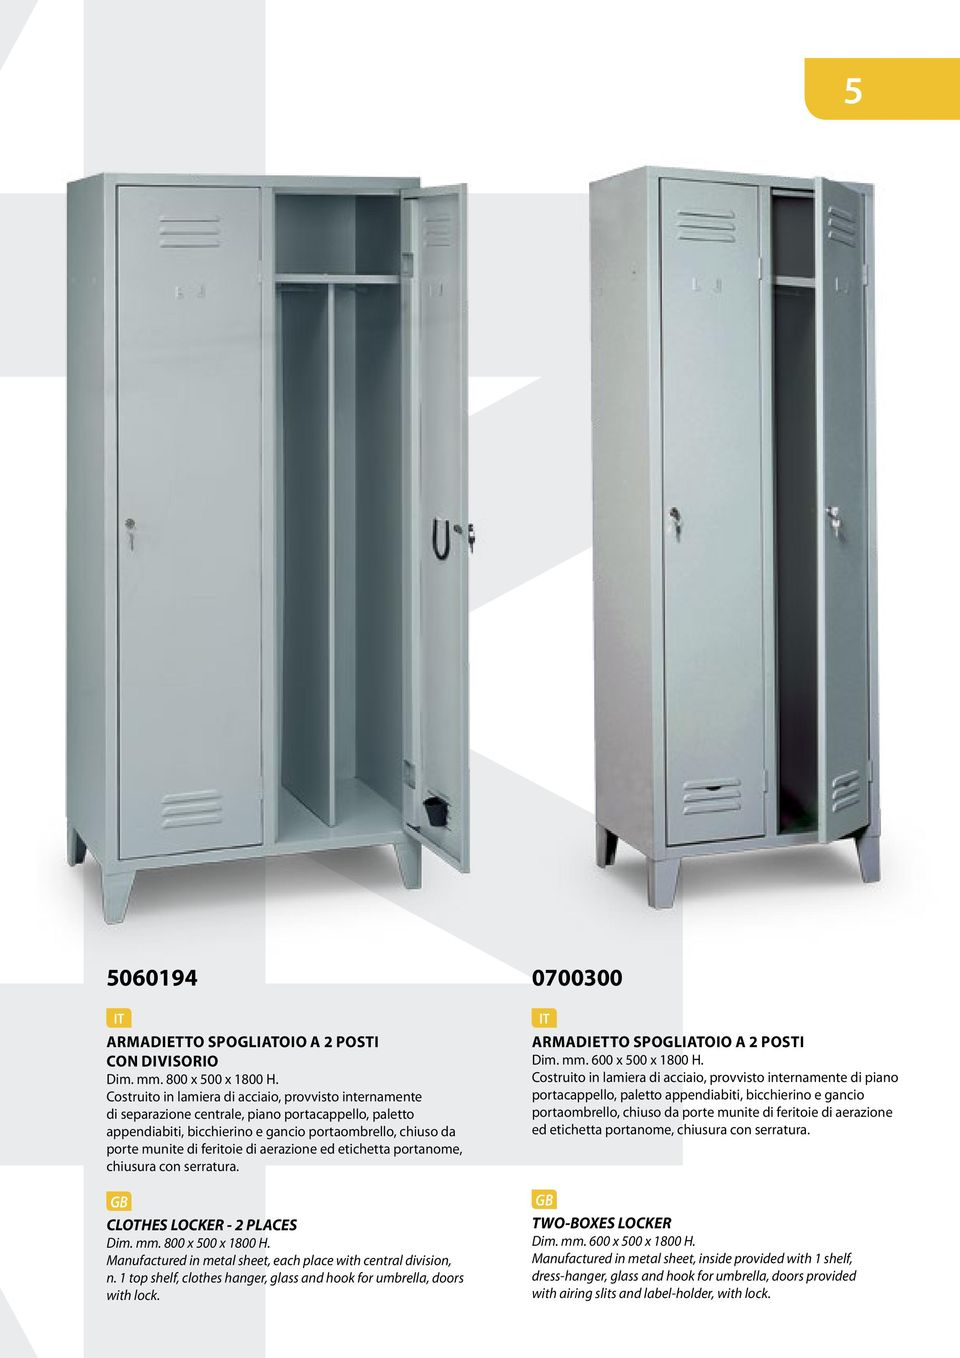 aerazione ed etichetta portanome, chiusura con serratura. CLOTHES LOCKER - 2 PLACES Dim. mm. 800 x 500 x 1800 H. Manufactured in metal sheet, each place with central division, n.